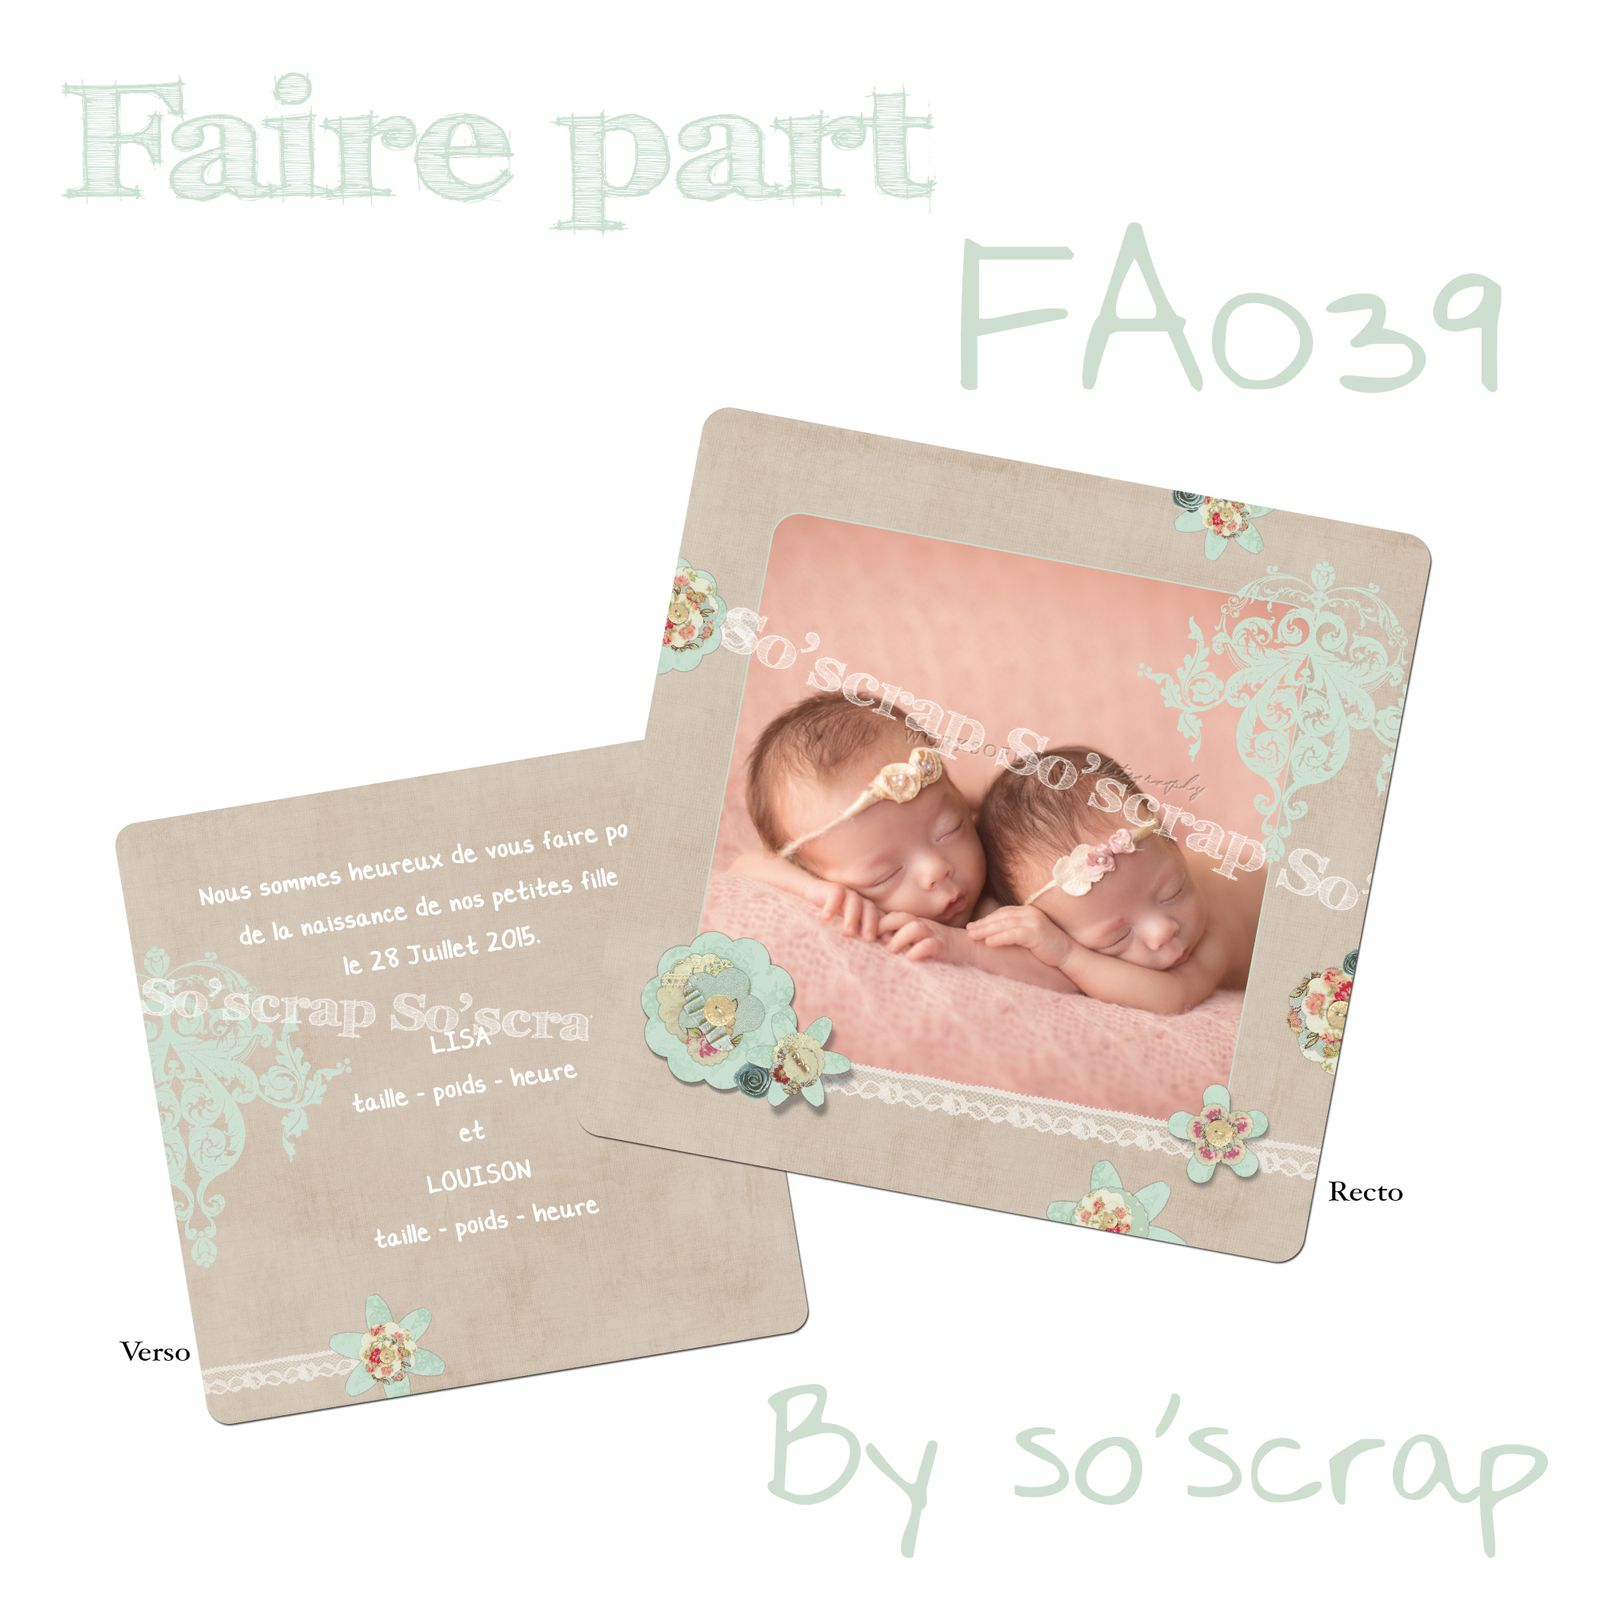 faire part naissance  création originale, unique scrapbooking digital baptême fille et rose à pois bleu, vert, orange, marron, chocolat, saumon À rayure princesse,ange  étoiles scintillantes unique et original  100% personnalisable